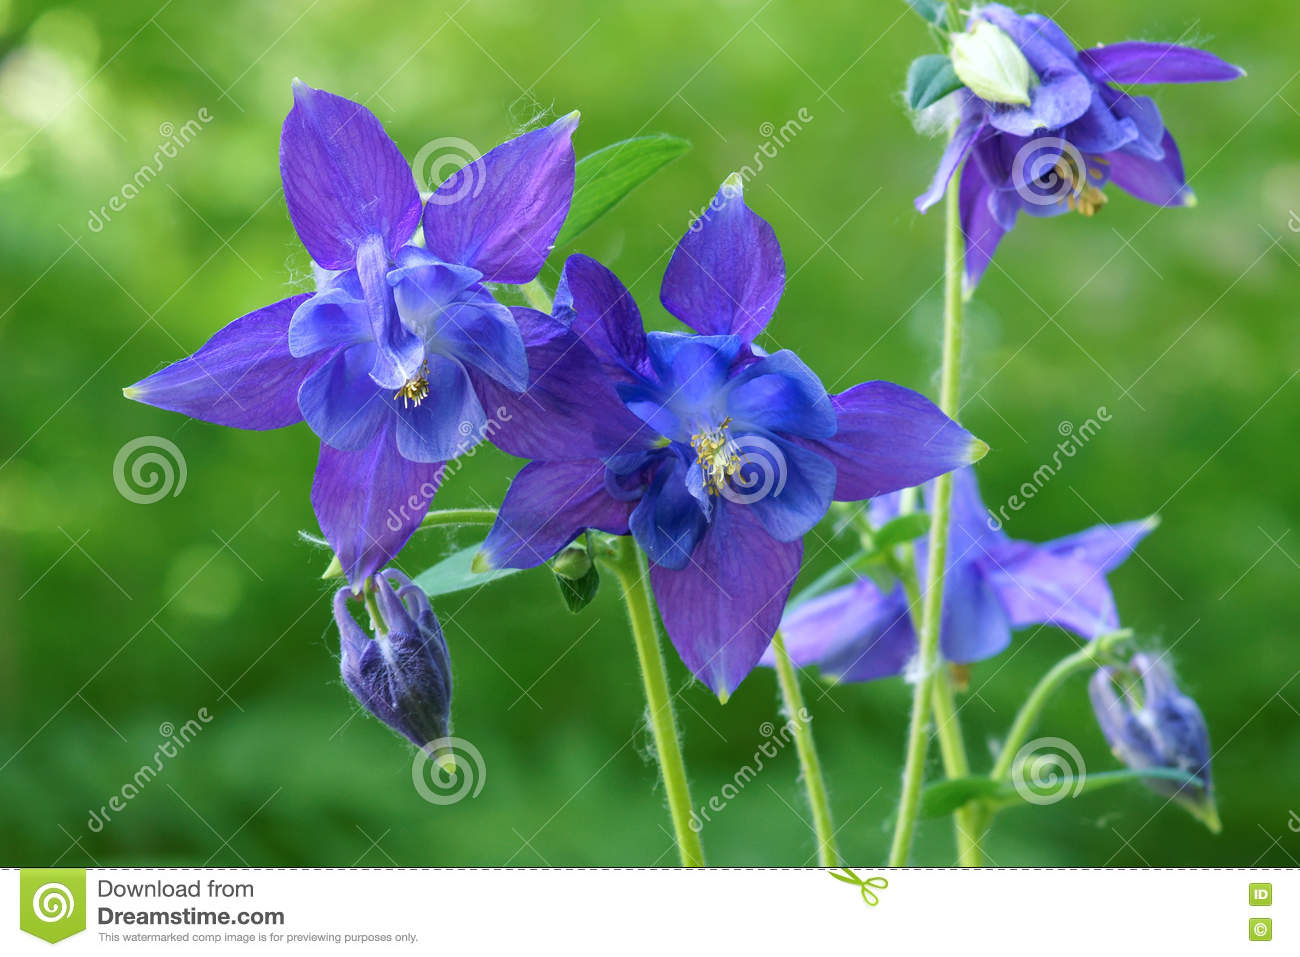 Purple columbine flowers stock image image of blossom 71938489 purple columbine flowers izmirmasajfo